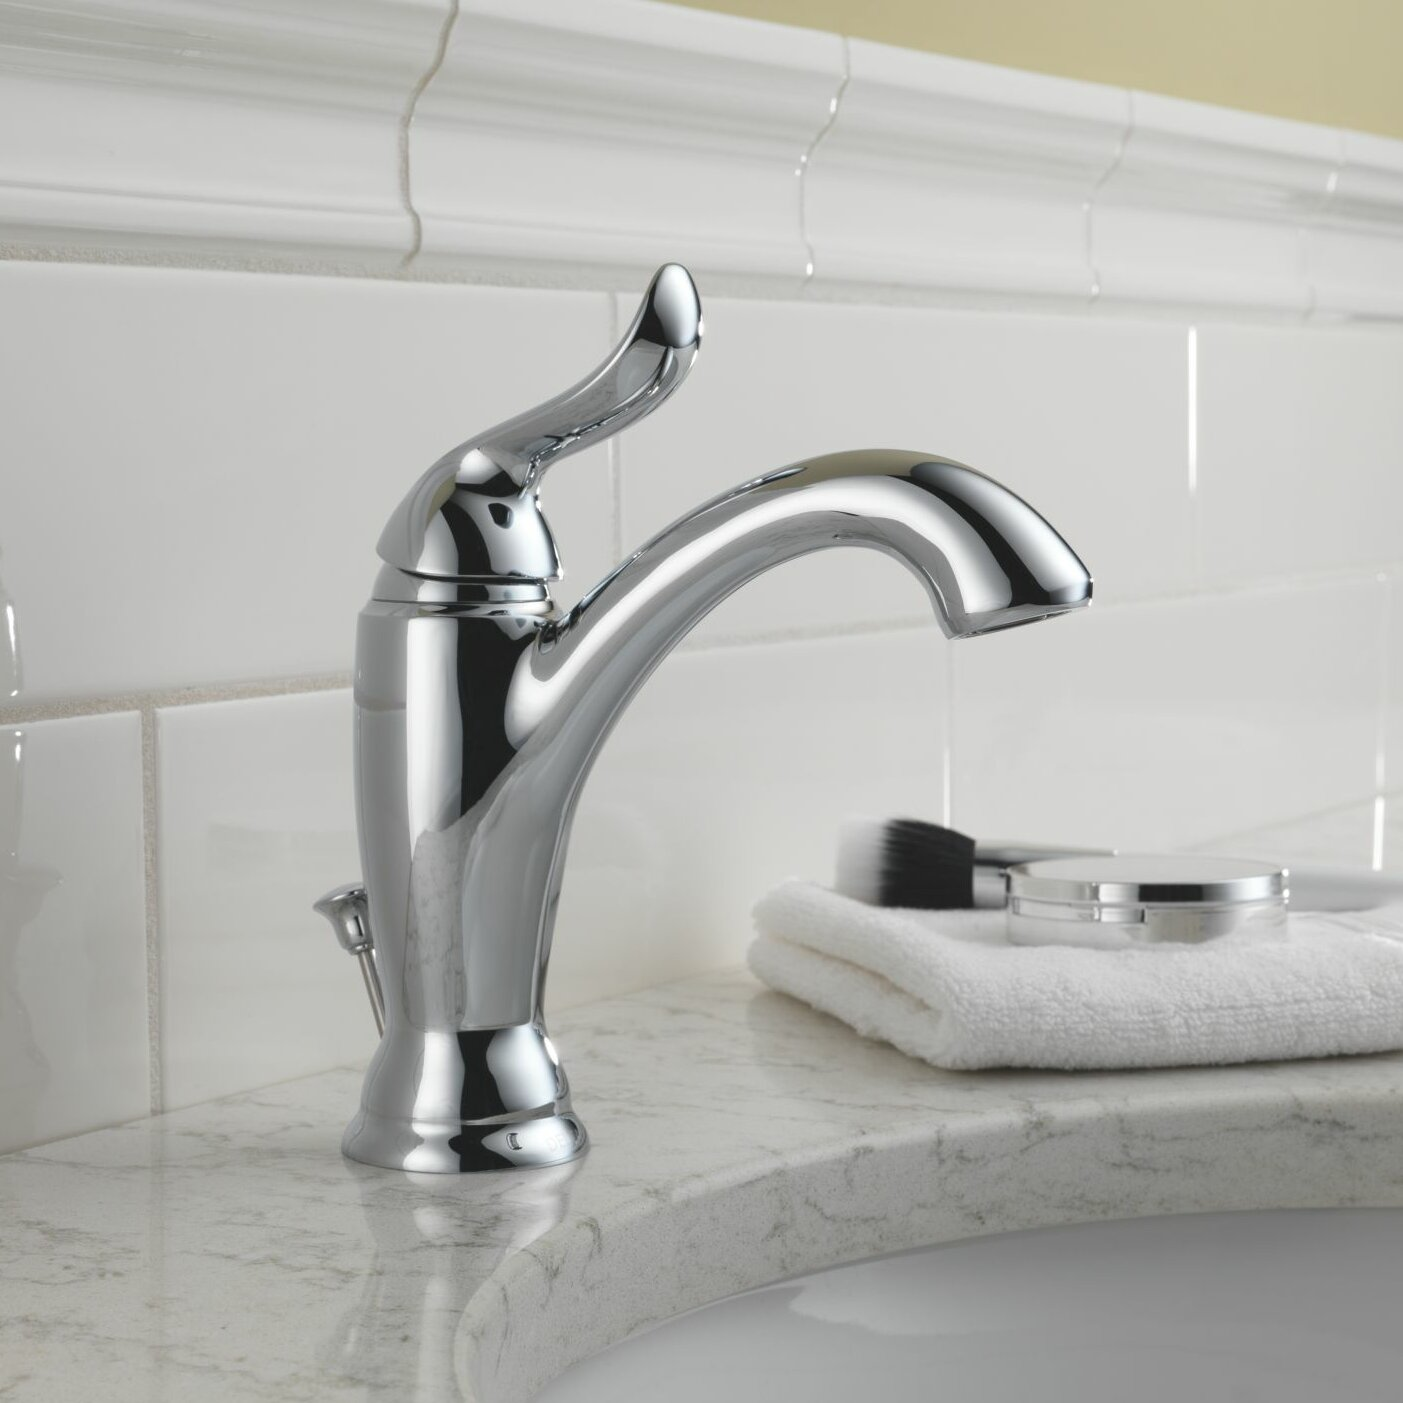 Delta Linden Standard Bathroom Faucet Lever Handle With Drain Assembly Reviews